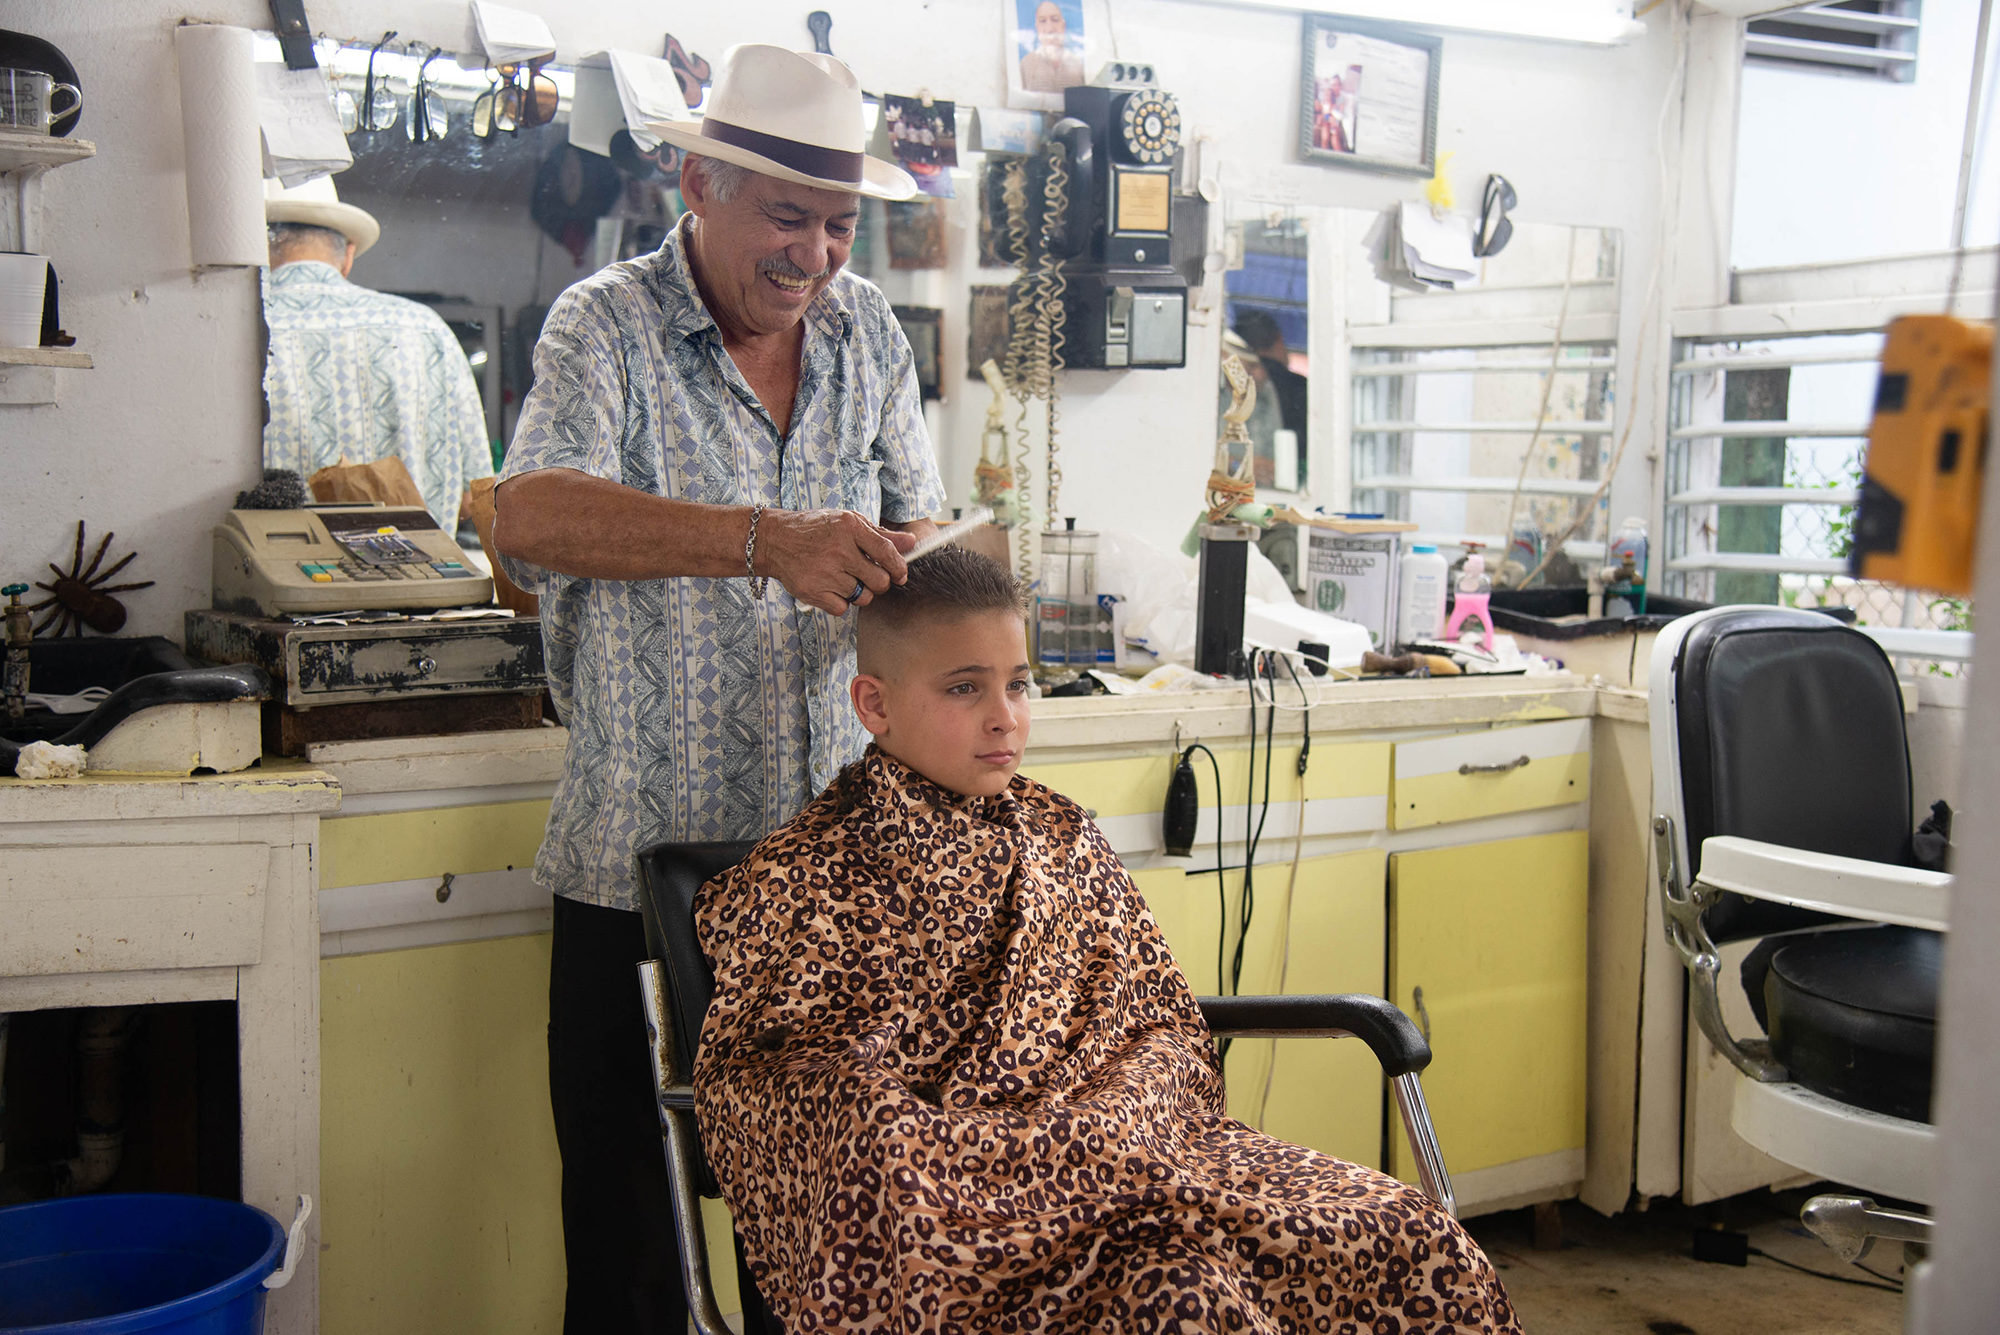 Joshua A. Gonzalez Feliciano gets a haircut from Orlando Perez at his solar-powered barber shop in Adjuntas. Photo by Valerie Welch